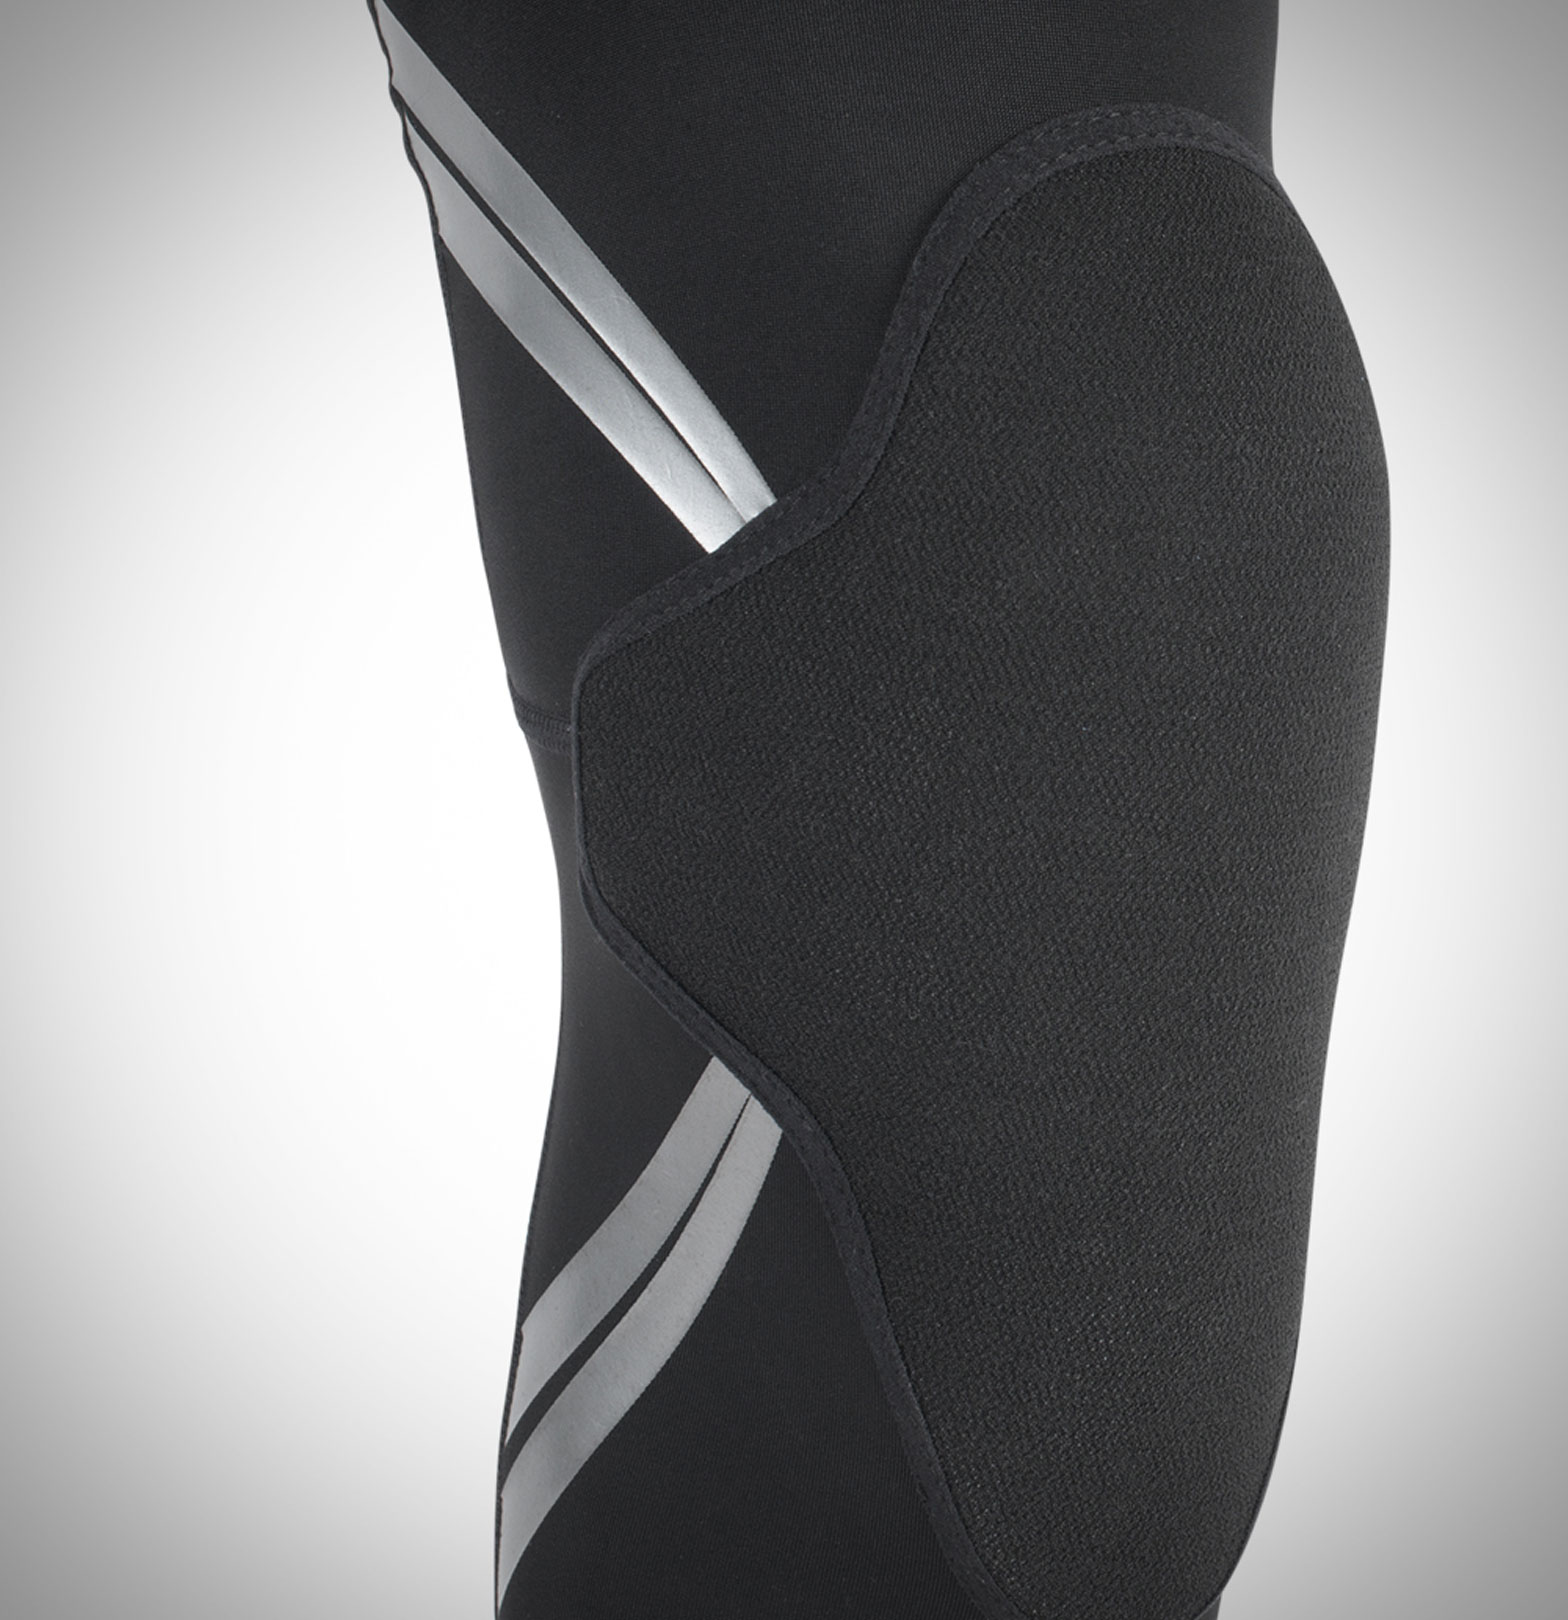 TSG Dermis A Knee-Sleeves Powerband. prefered also by the Austrian mtb team Dorong